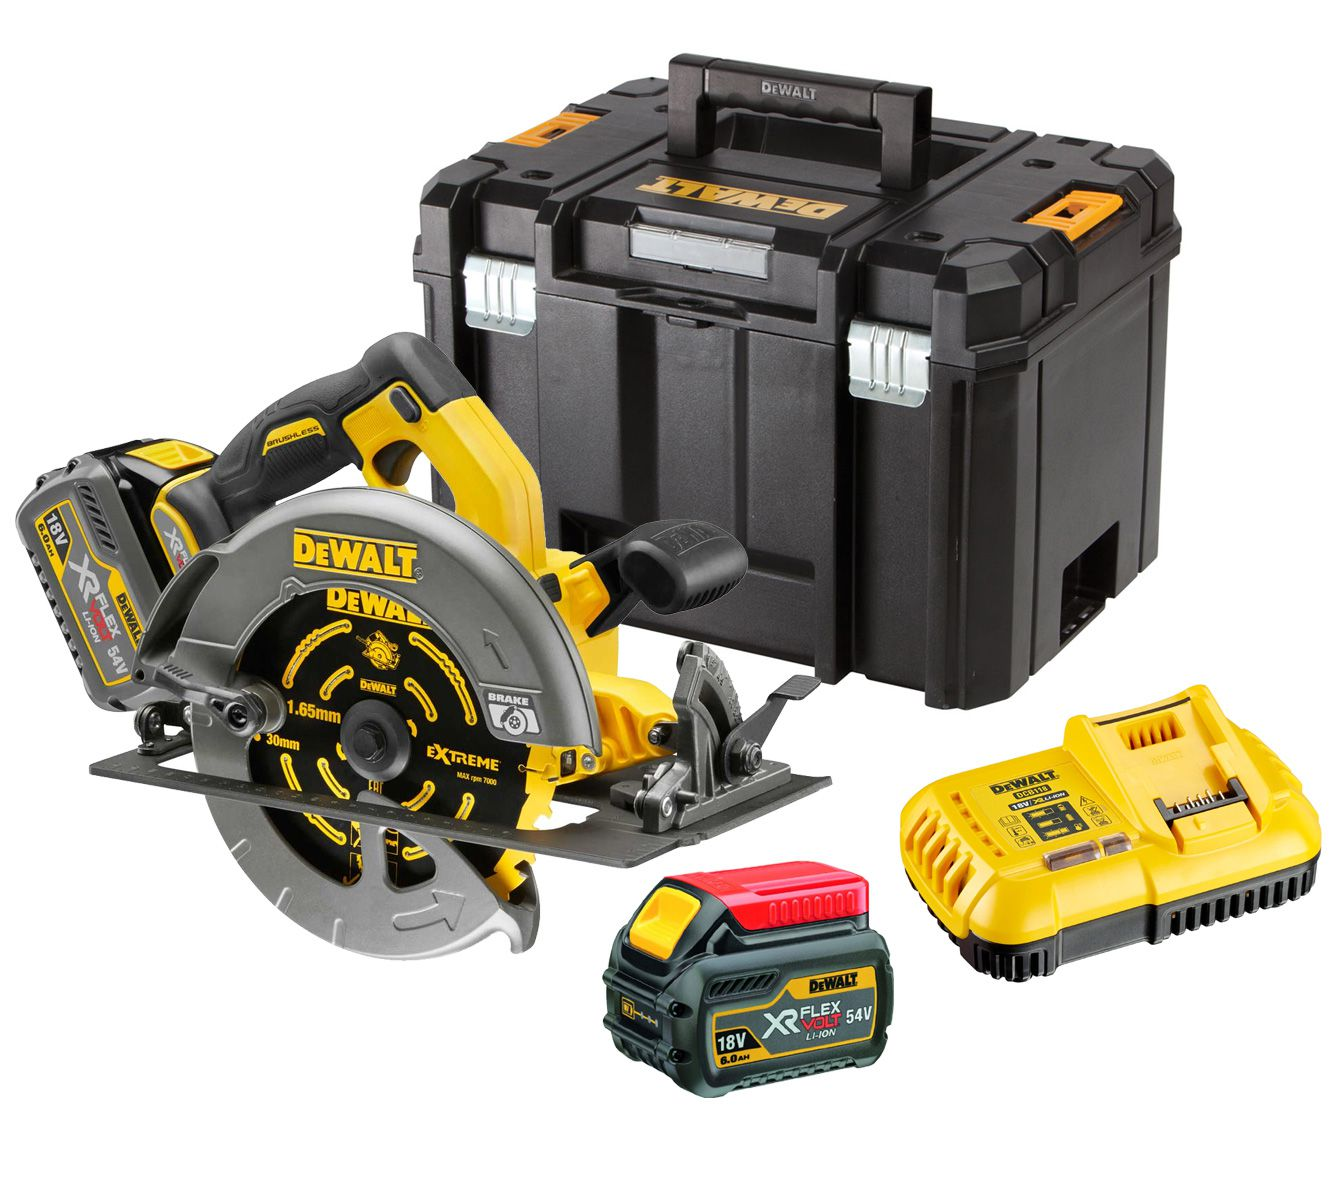 - 54V XR Flex Volt 190mm Circular Saw